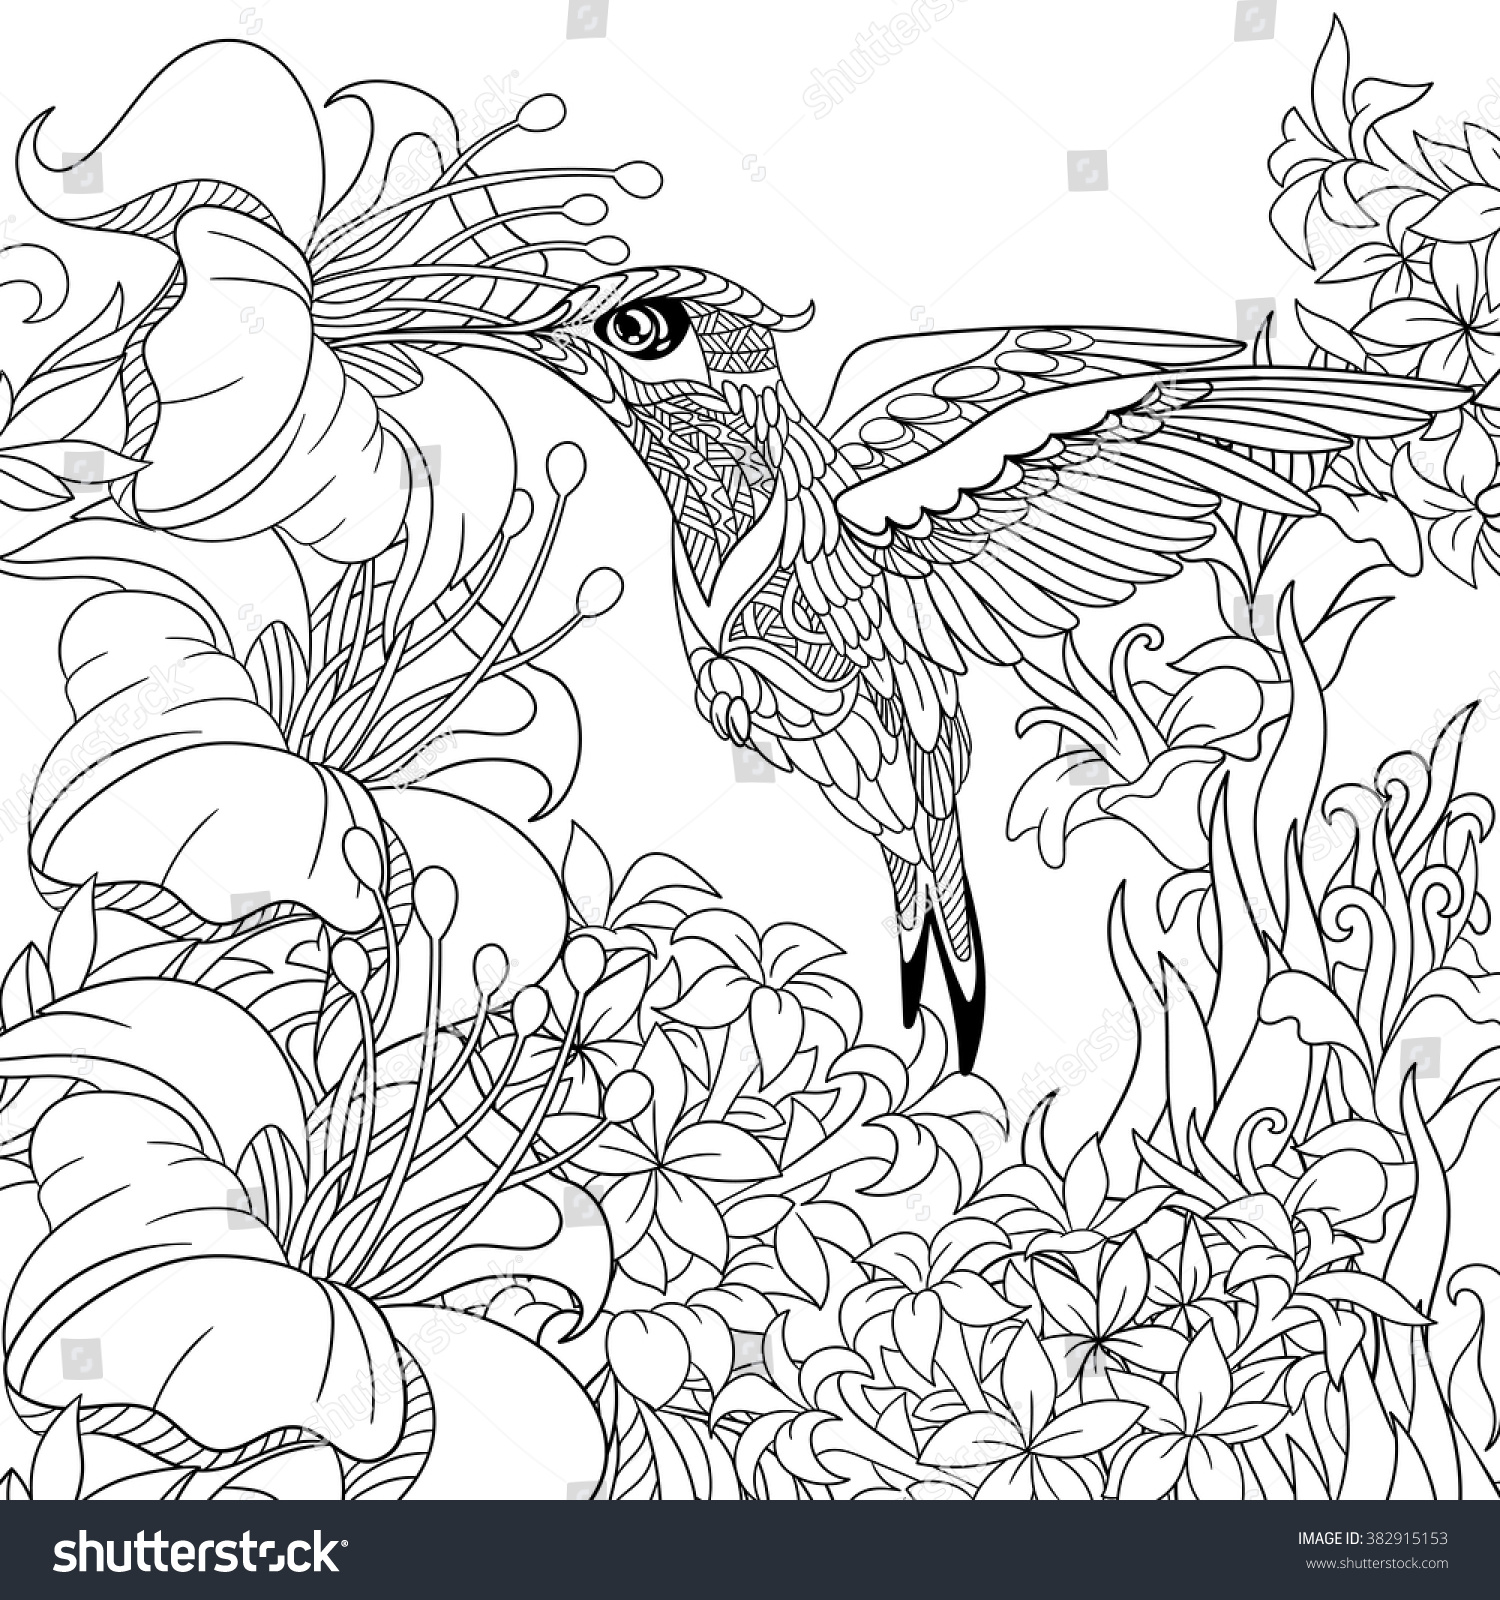 Zentangle stylized cartoon hummingbird flying around flowers full of nectar sketch for adult antistress coloring page hand drawn doodle zentangle